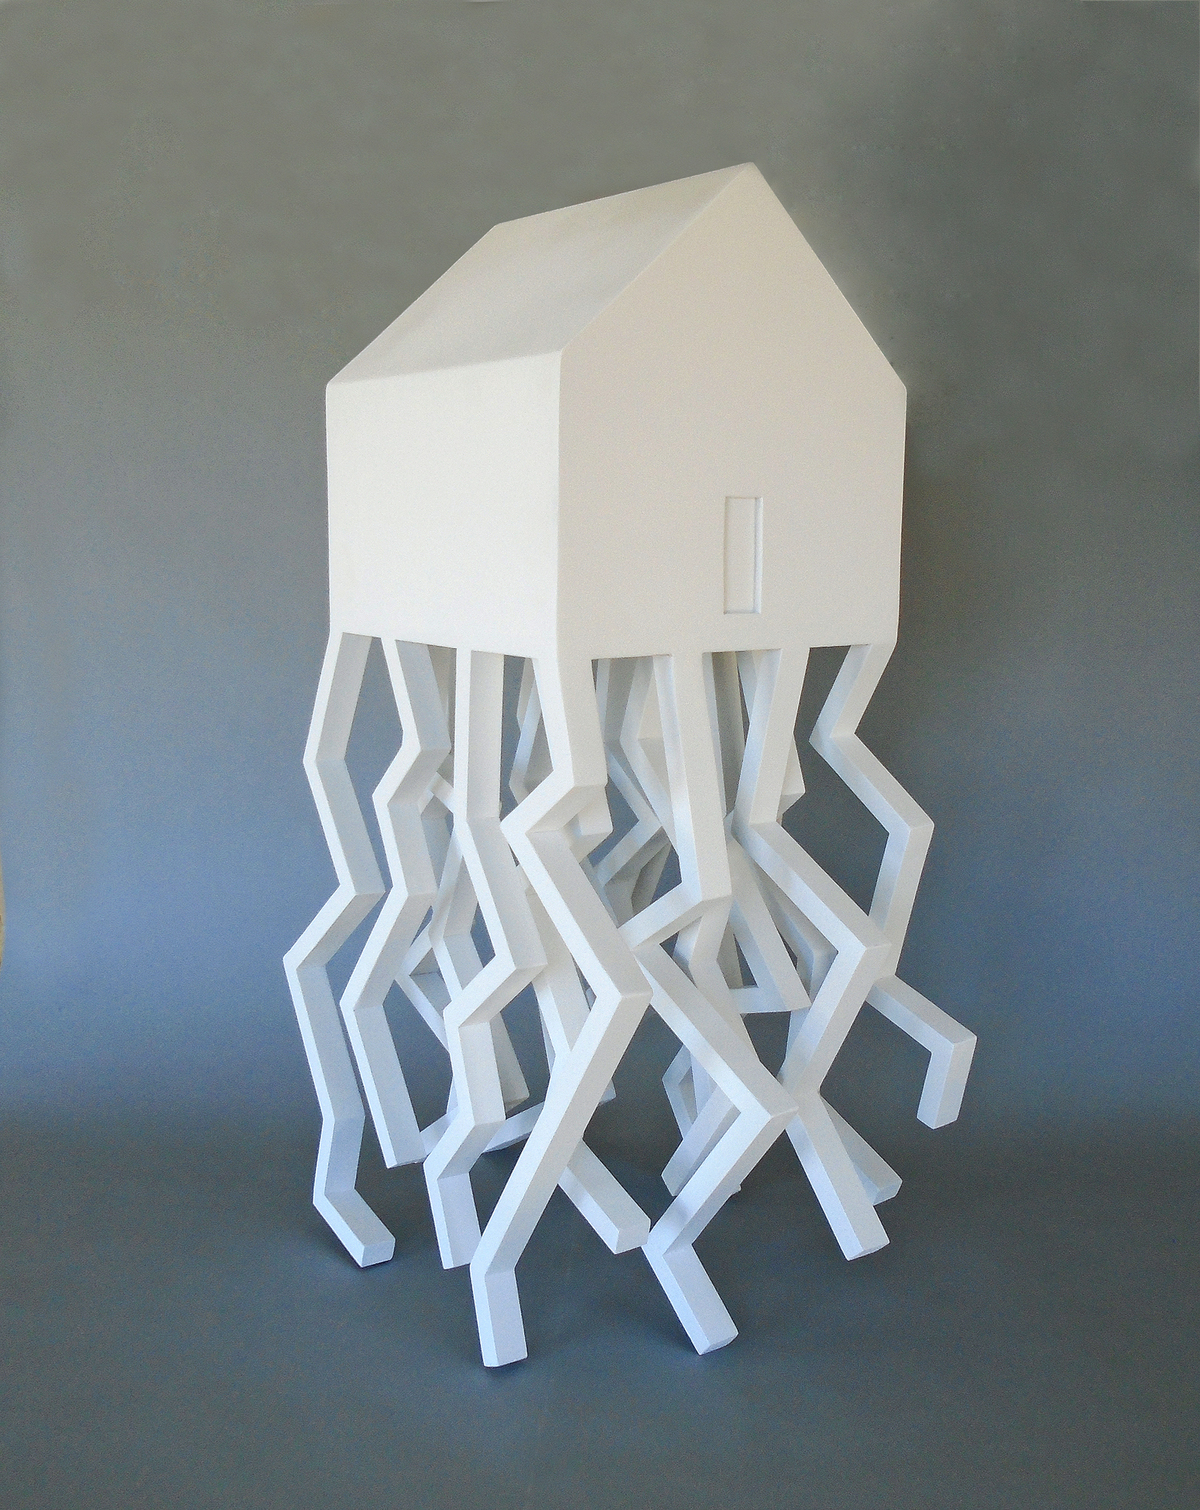 Taller Version of the Mobile Home.